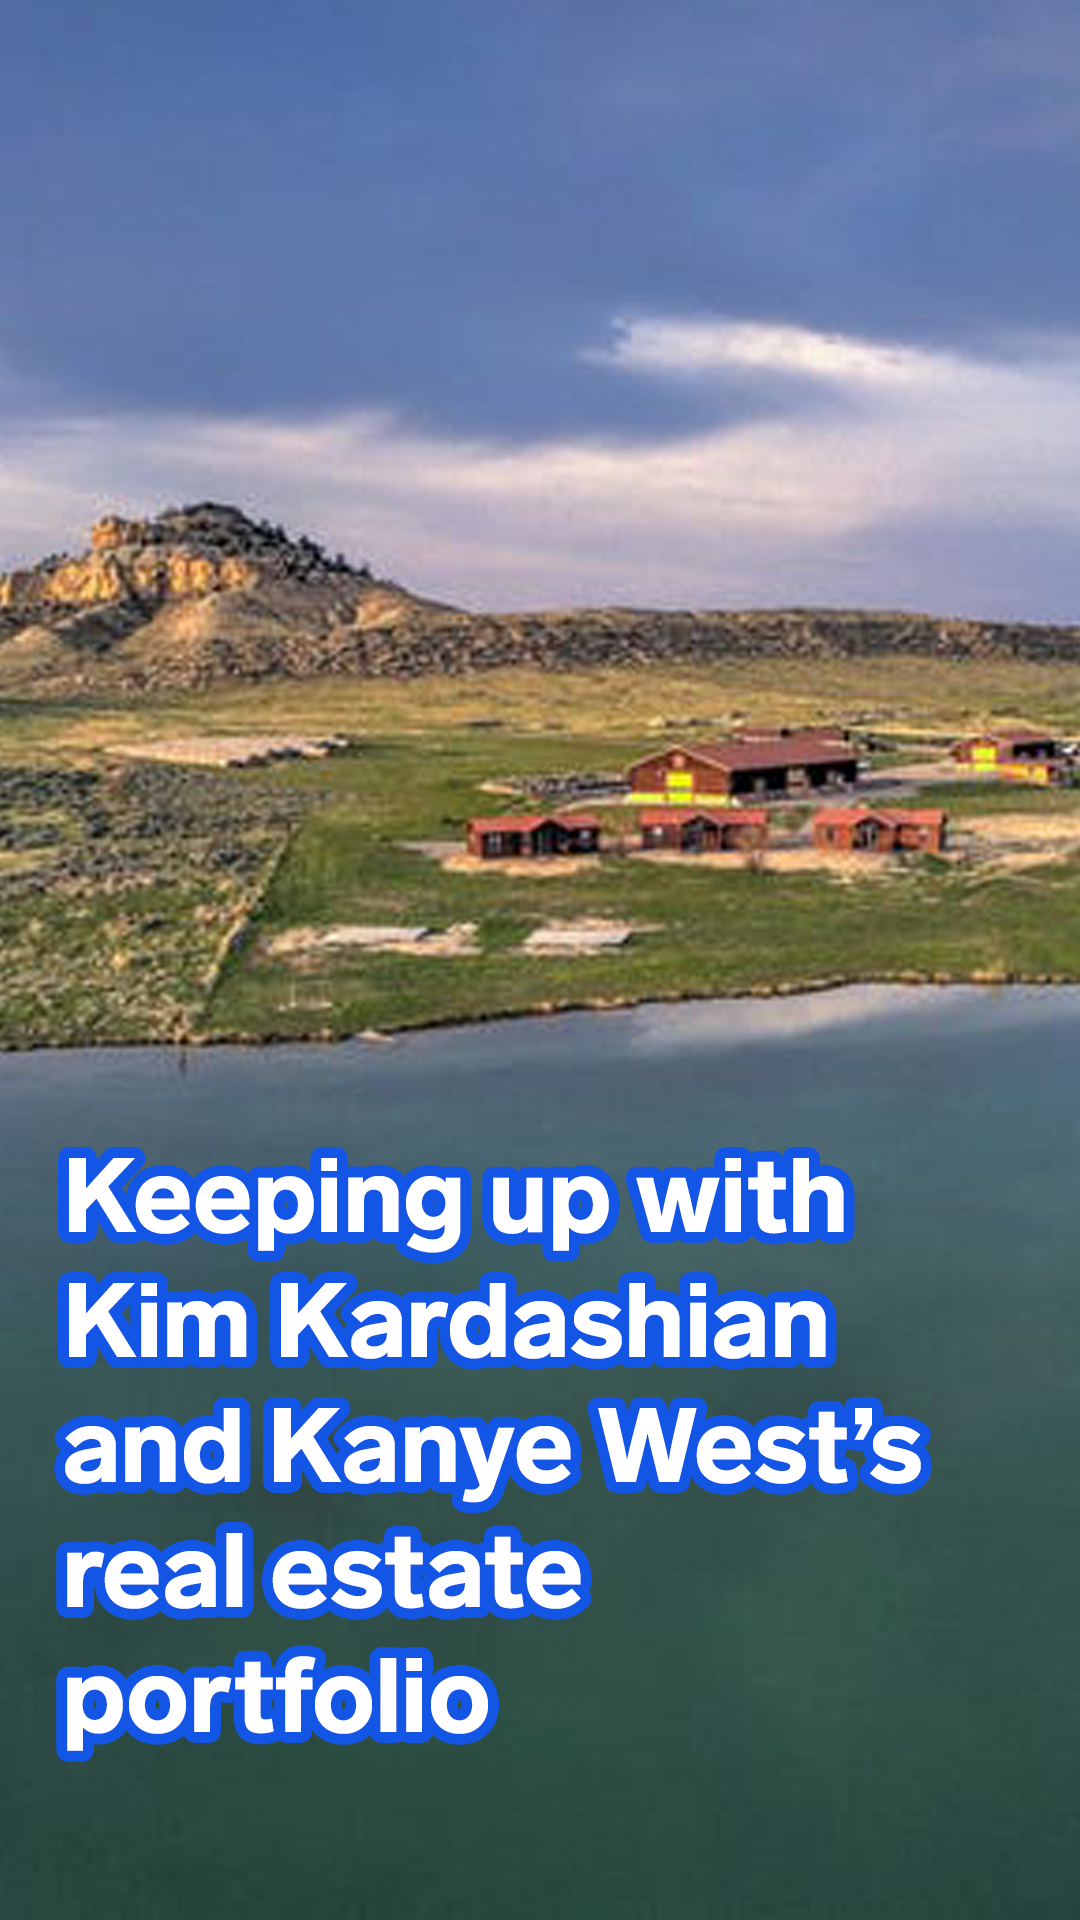 Kanye West And Kim Kardashian Have Spent Millions On Homes Across The Country From Wyoming Ranches To An Ever Expanding La Compound Take A Look Inside Their R Kanye West And Kim